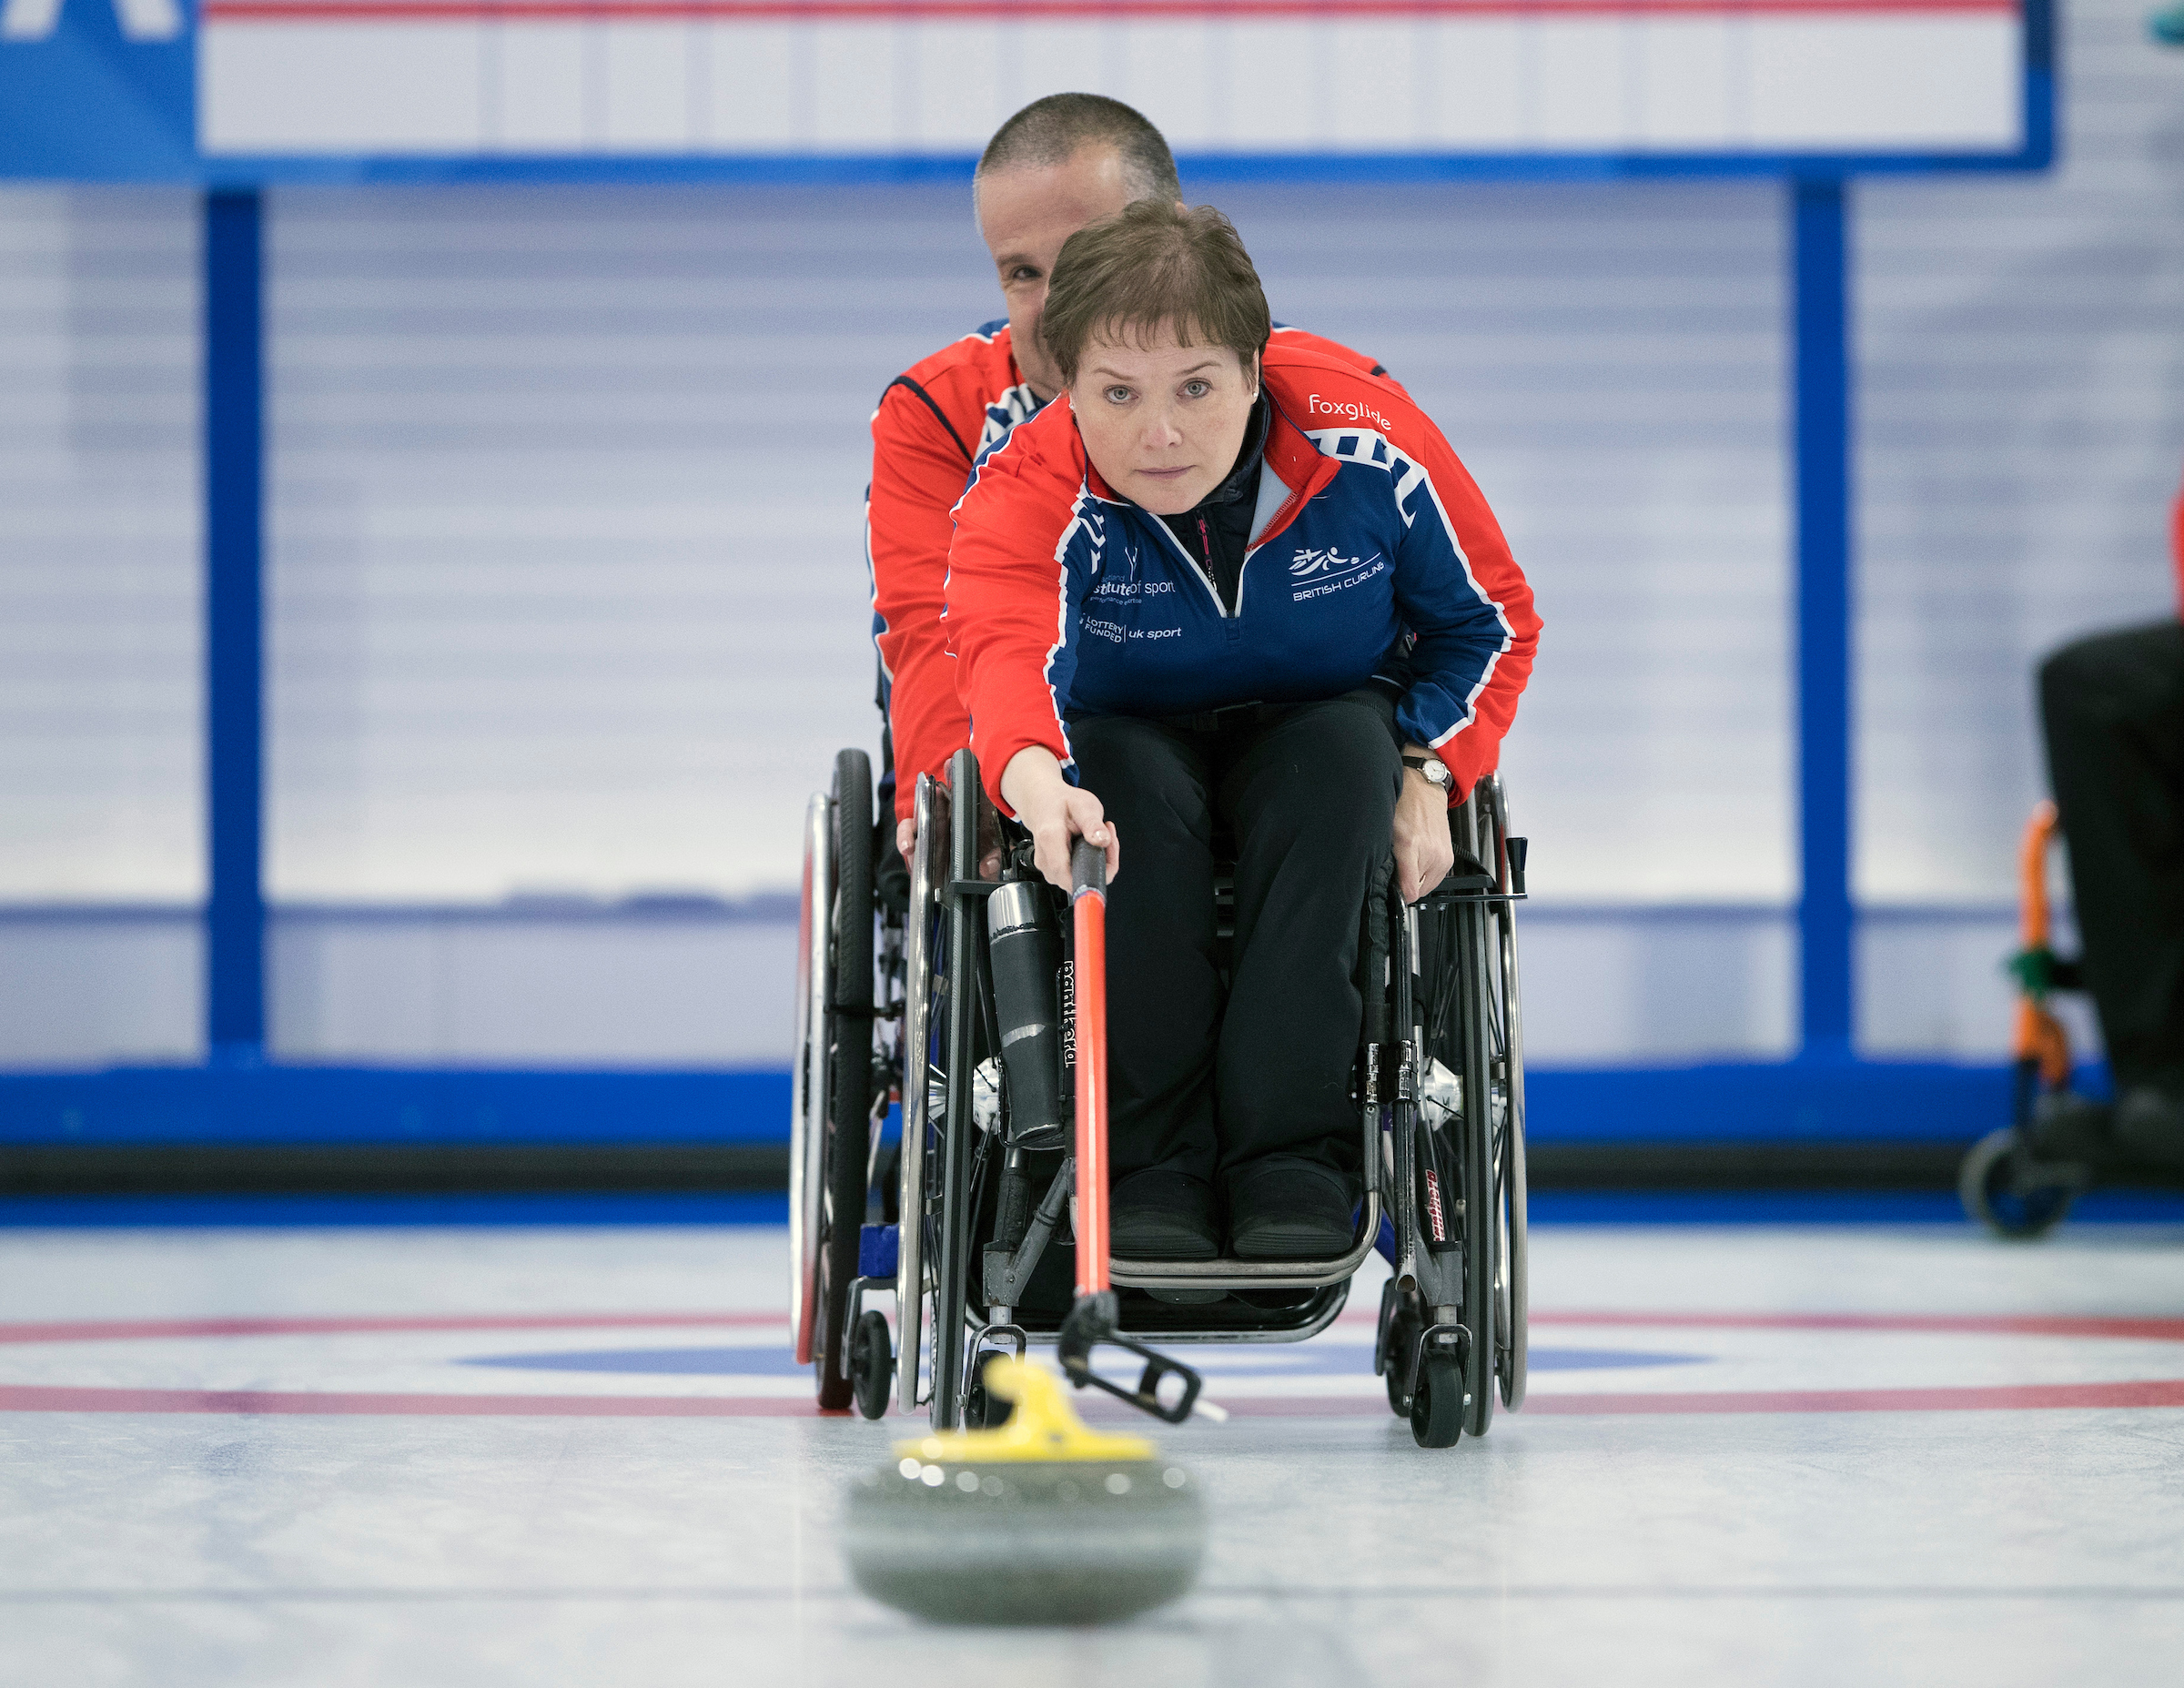 World Wheelchair Curling Championships comes to Stirling